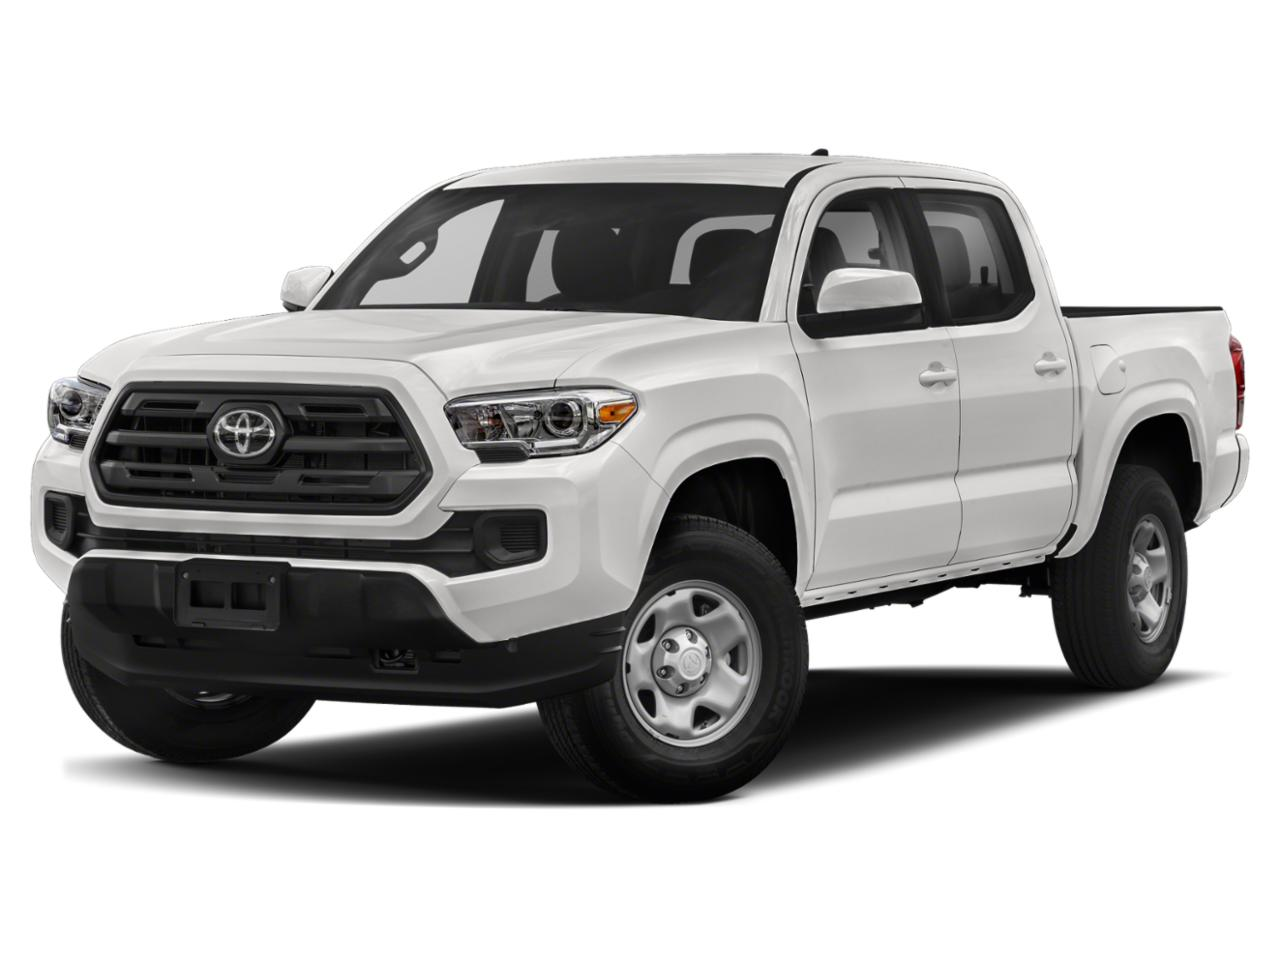 2019 Toyota Tacoma 2WD Vehicle Photo in Edinburg, TX 78542